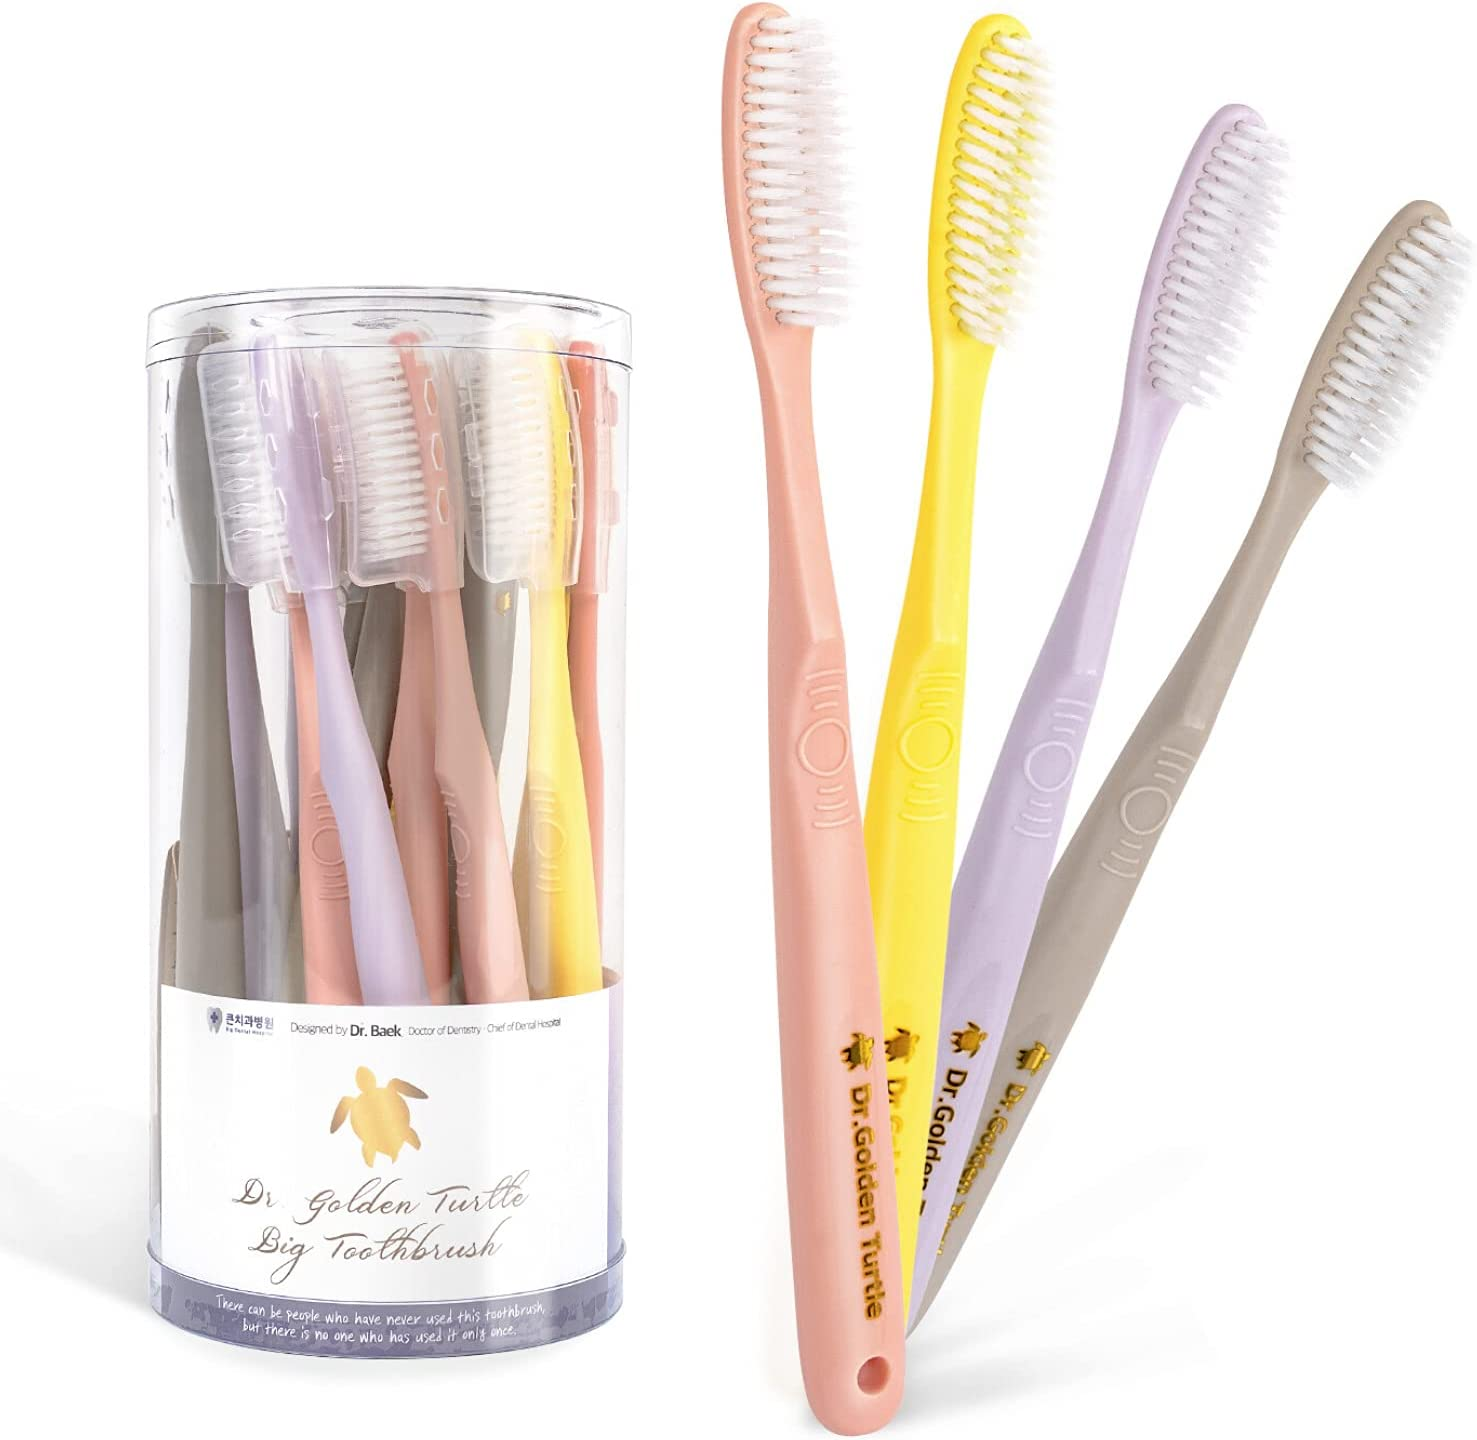 Dr.Golden Turtle Long Head Toothbrush 5 ☆ popular 16-Pack Recommended by Designed Dentis